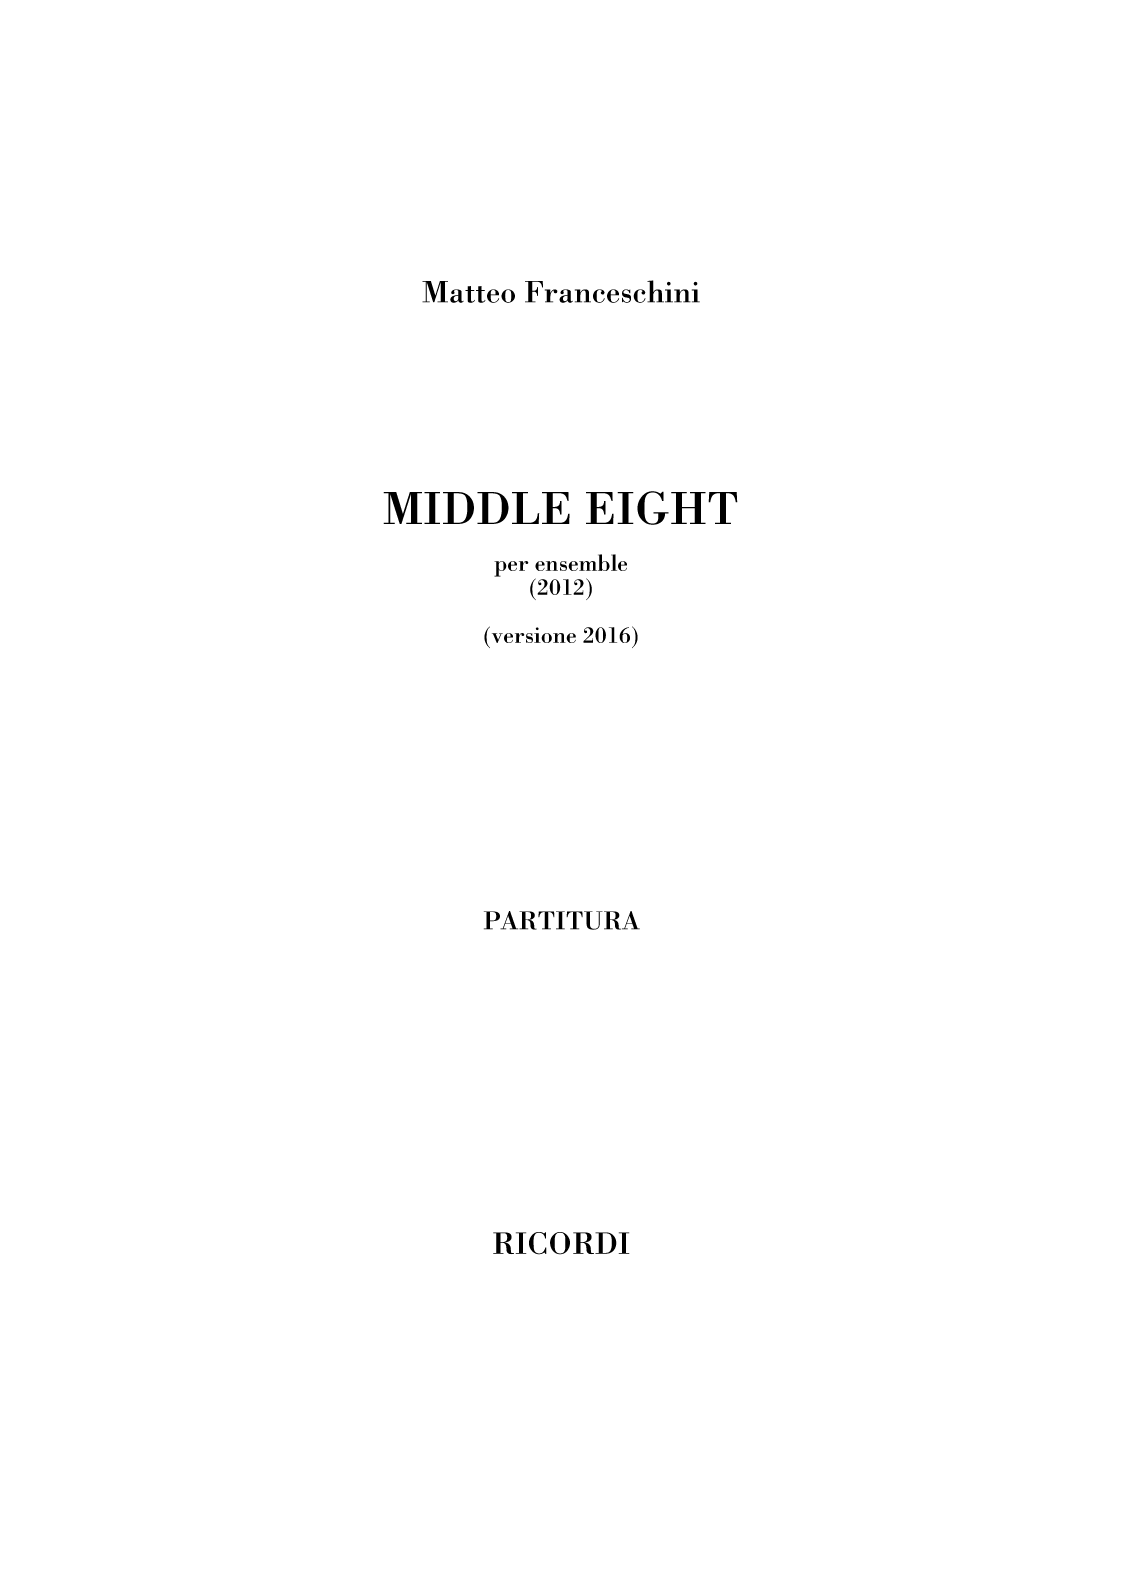 Middle Eight (flipbook)